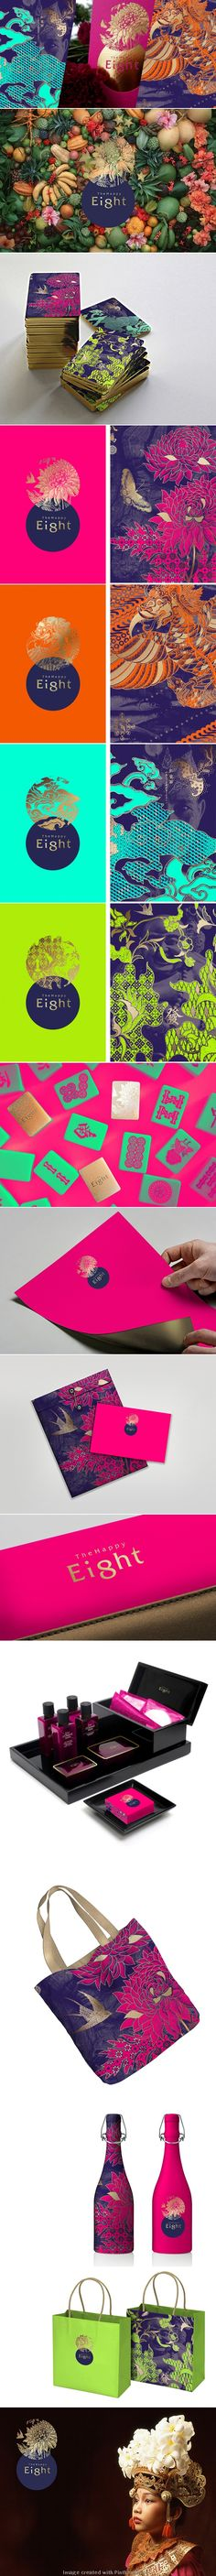 All time favorite!. | The Happy Eight Hotel - ID/ Branding..